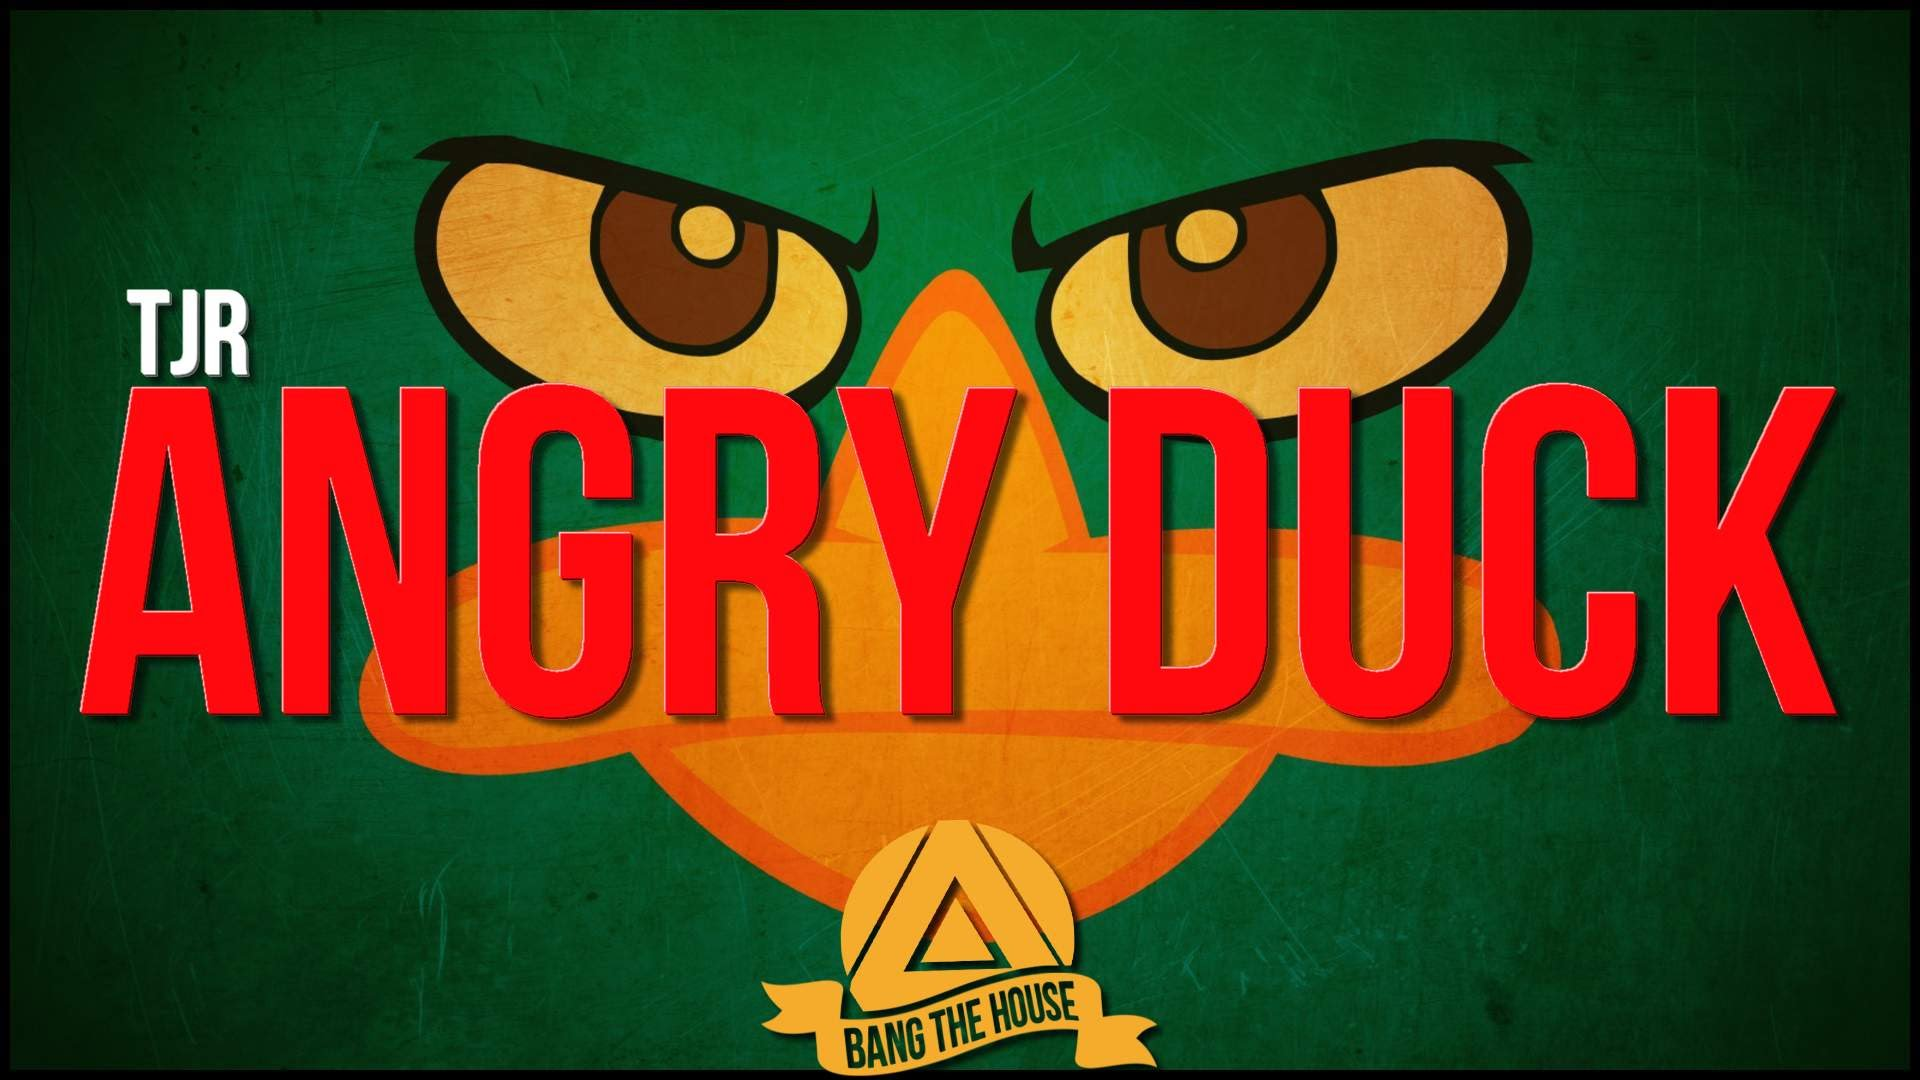 HQ Angry Duck Wallpapers | File 162.8Kb